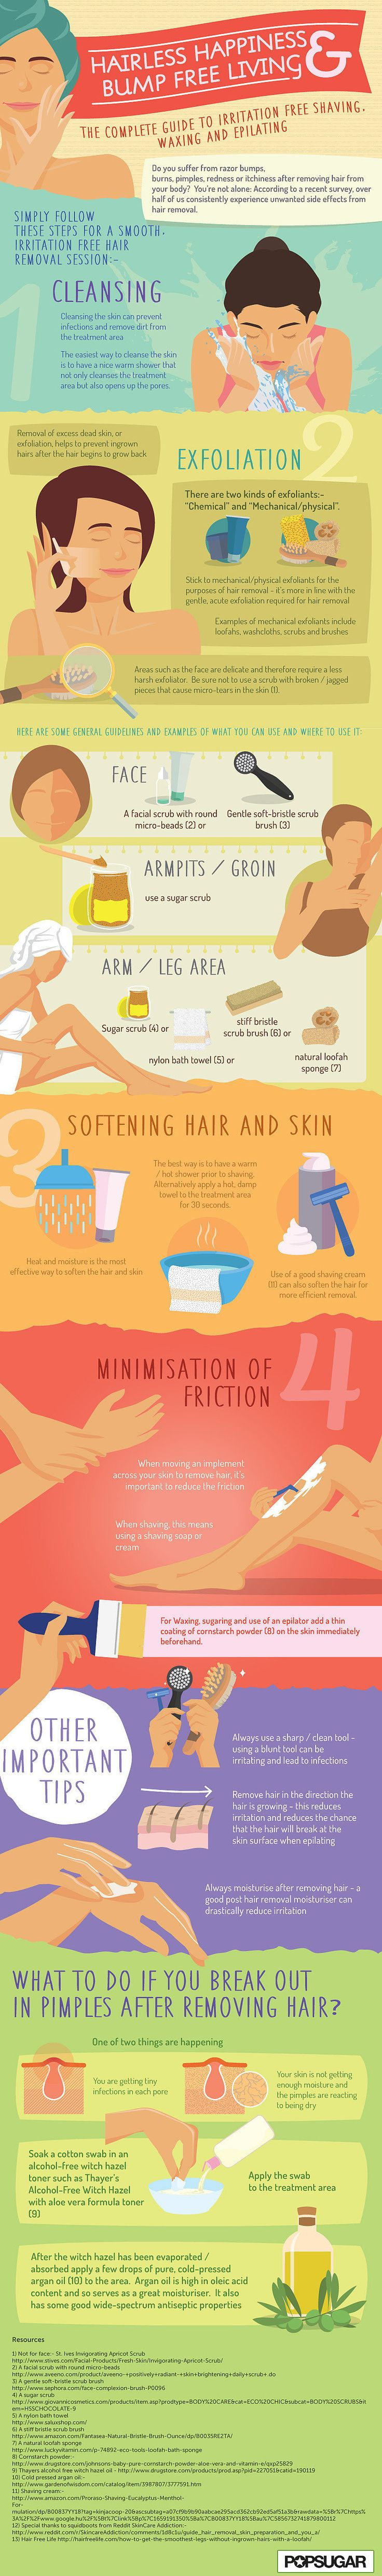 Tired of getting ingrown hairs? These beauty tips will ensure that your skin stays silky smooth and hair-free all Summer long!